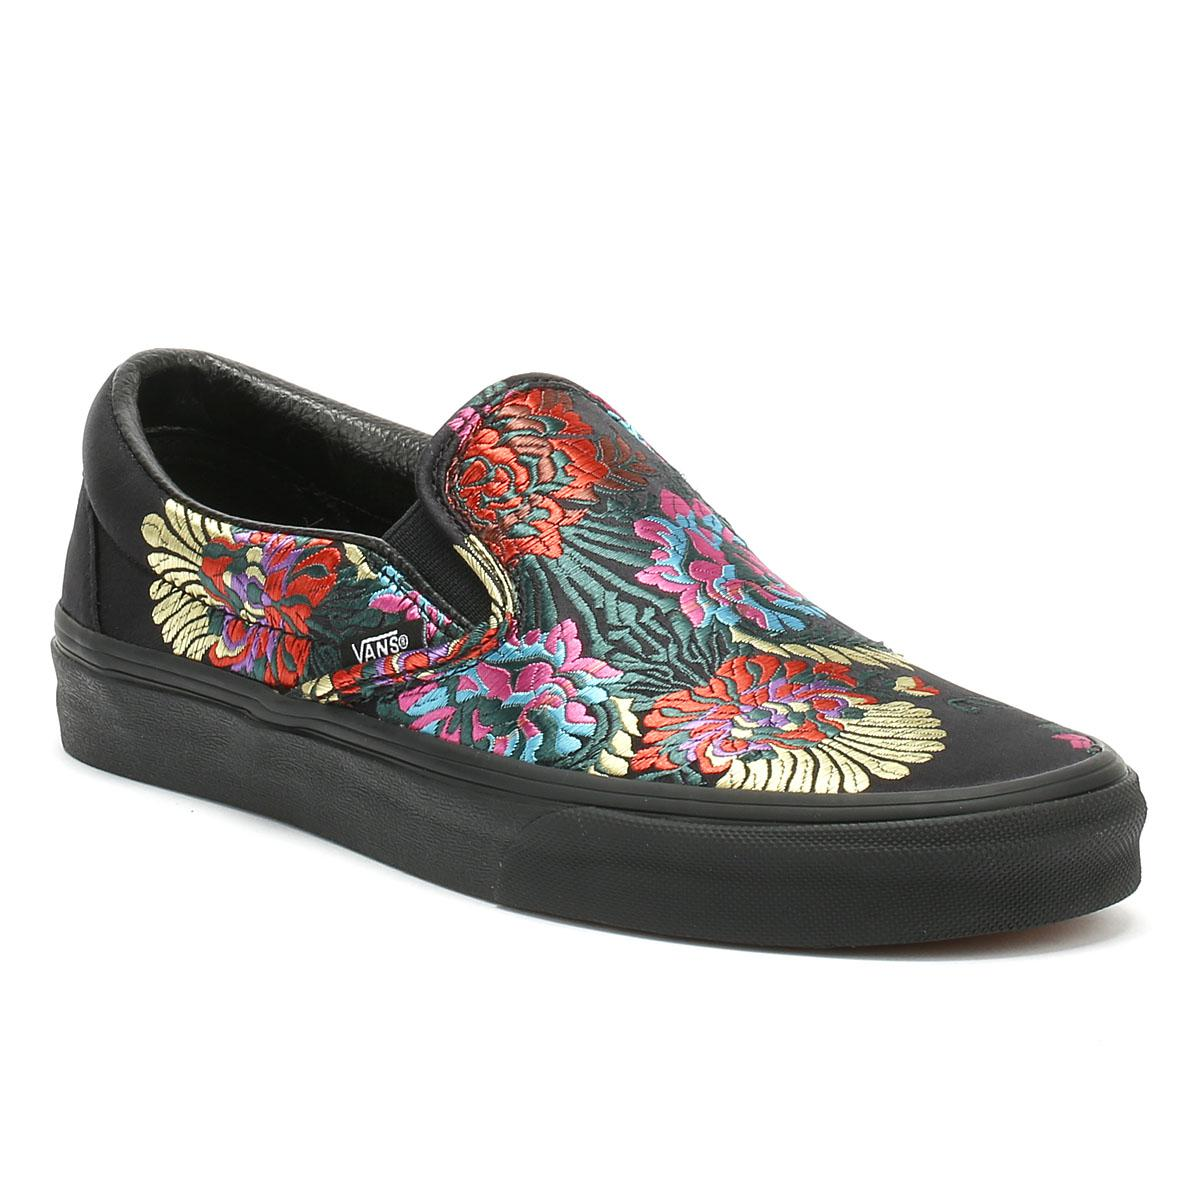 96356d253bc Lyst - Vans Classic Slip On Festival Satin Womens Black Trainers in ...